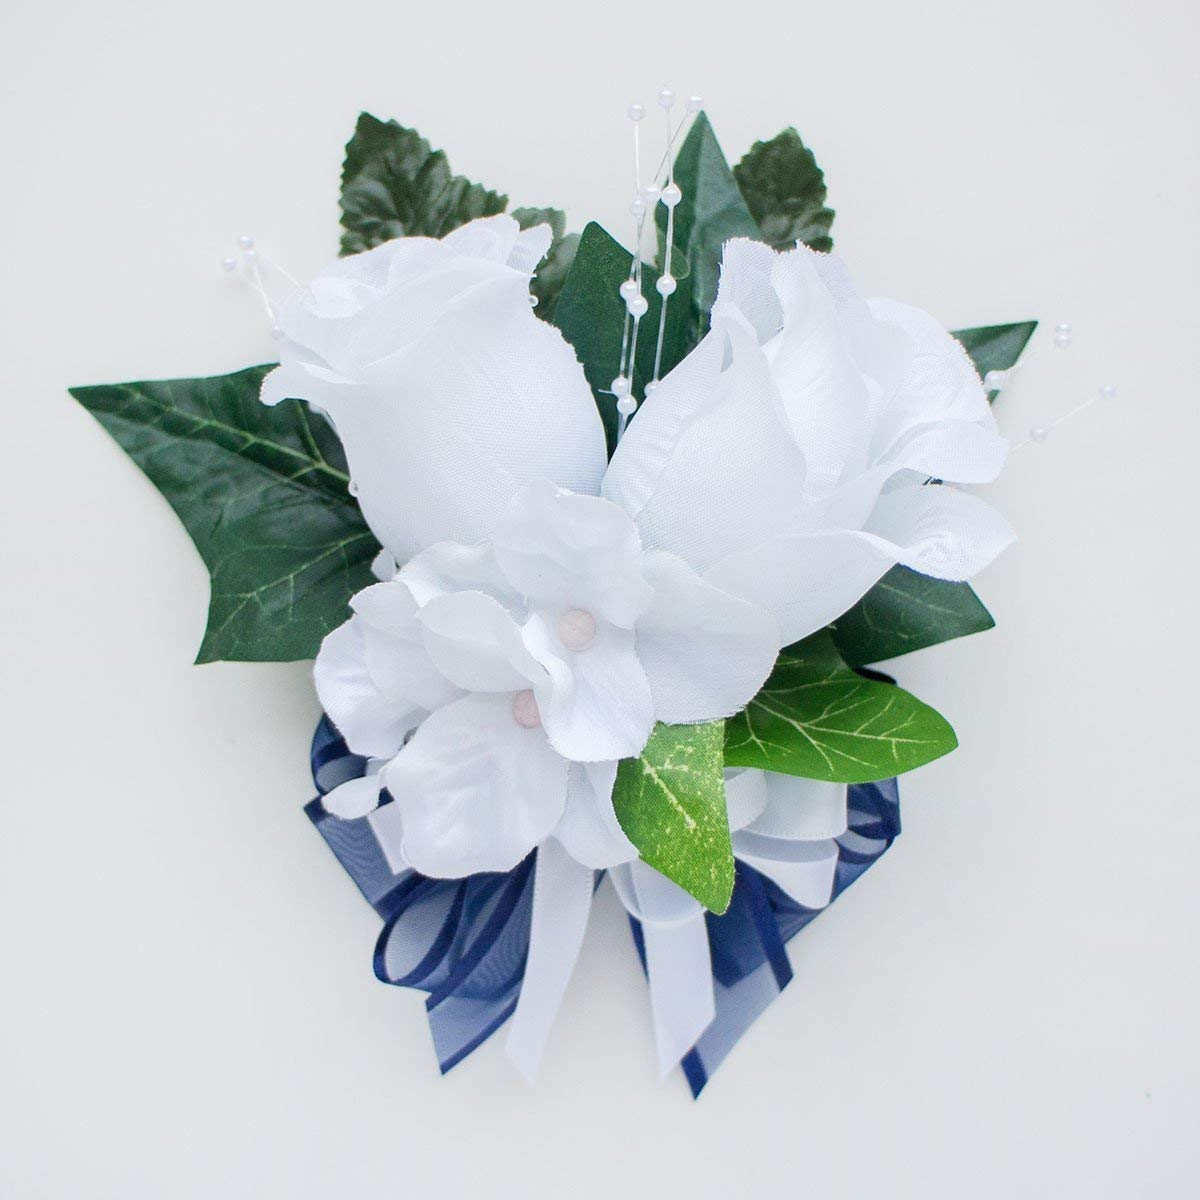 Cheap Corsage Silk Flowers Find Corsage Silk Flowers Deals On Line